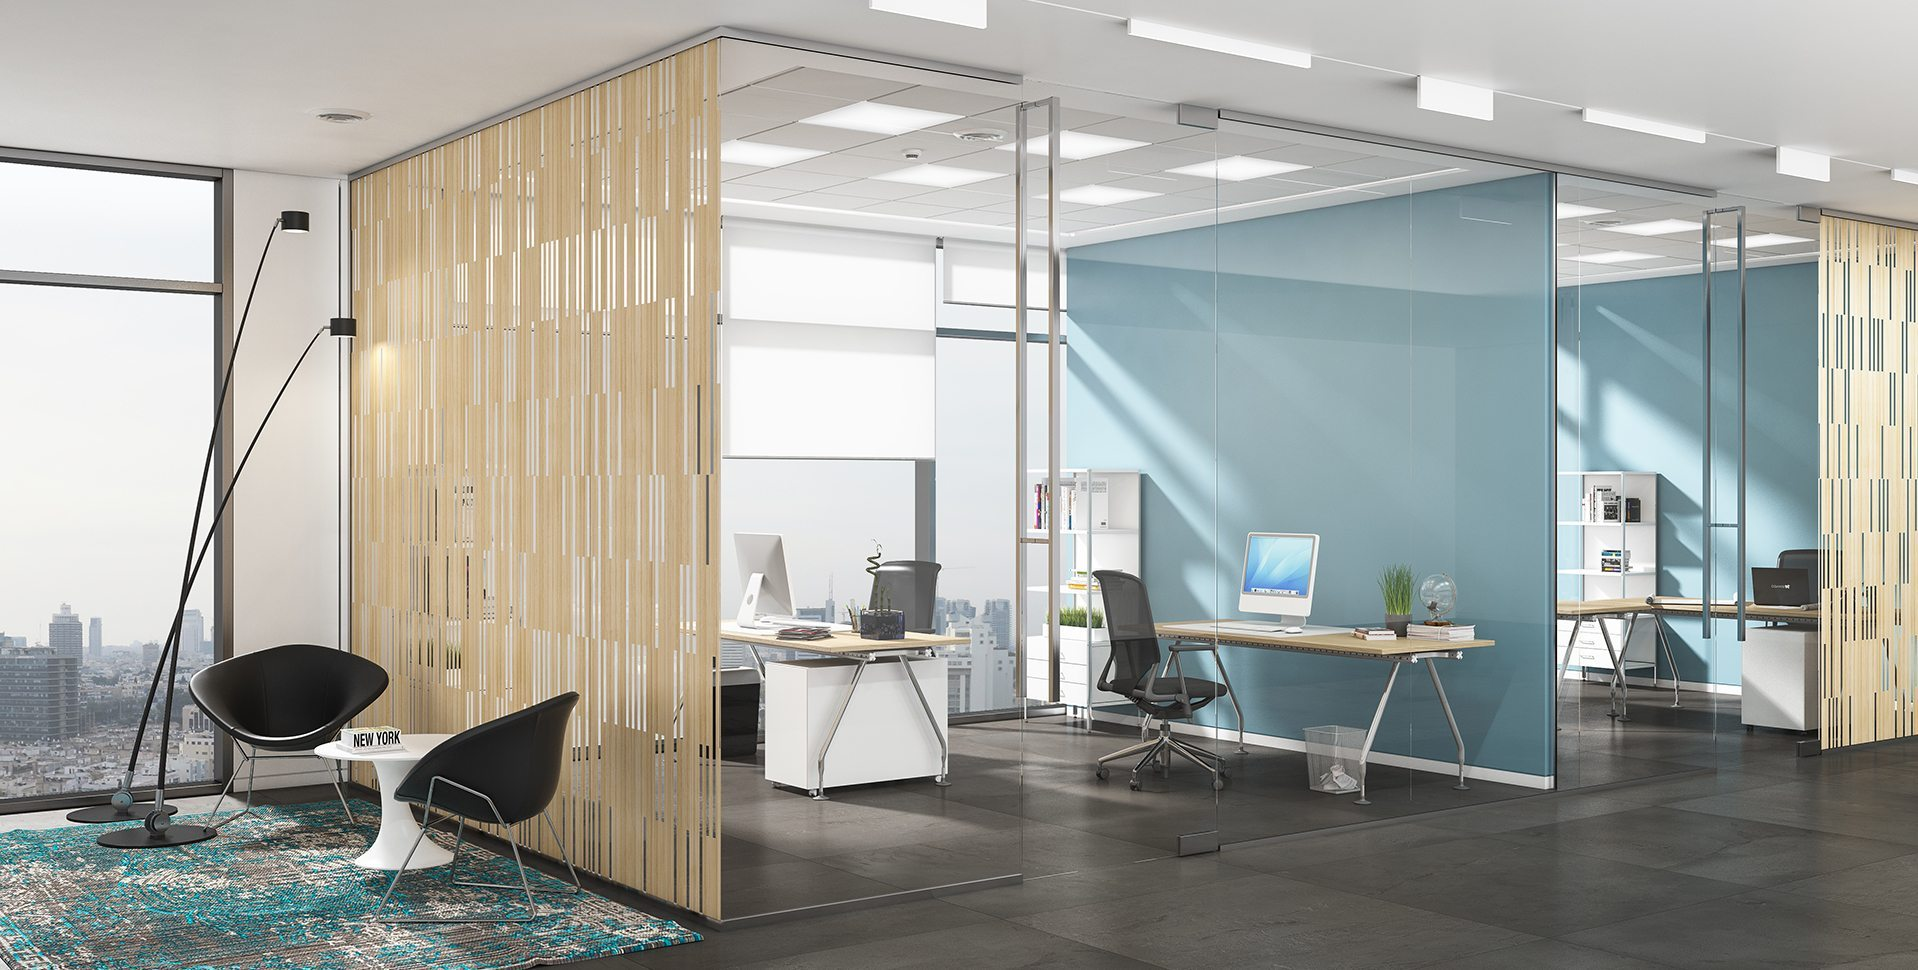 Product Visualization: Printing on glass, Office Interior